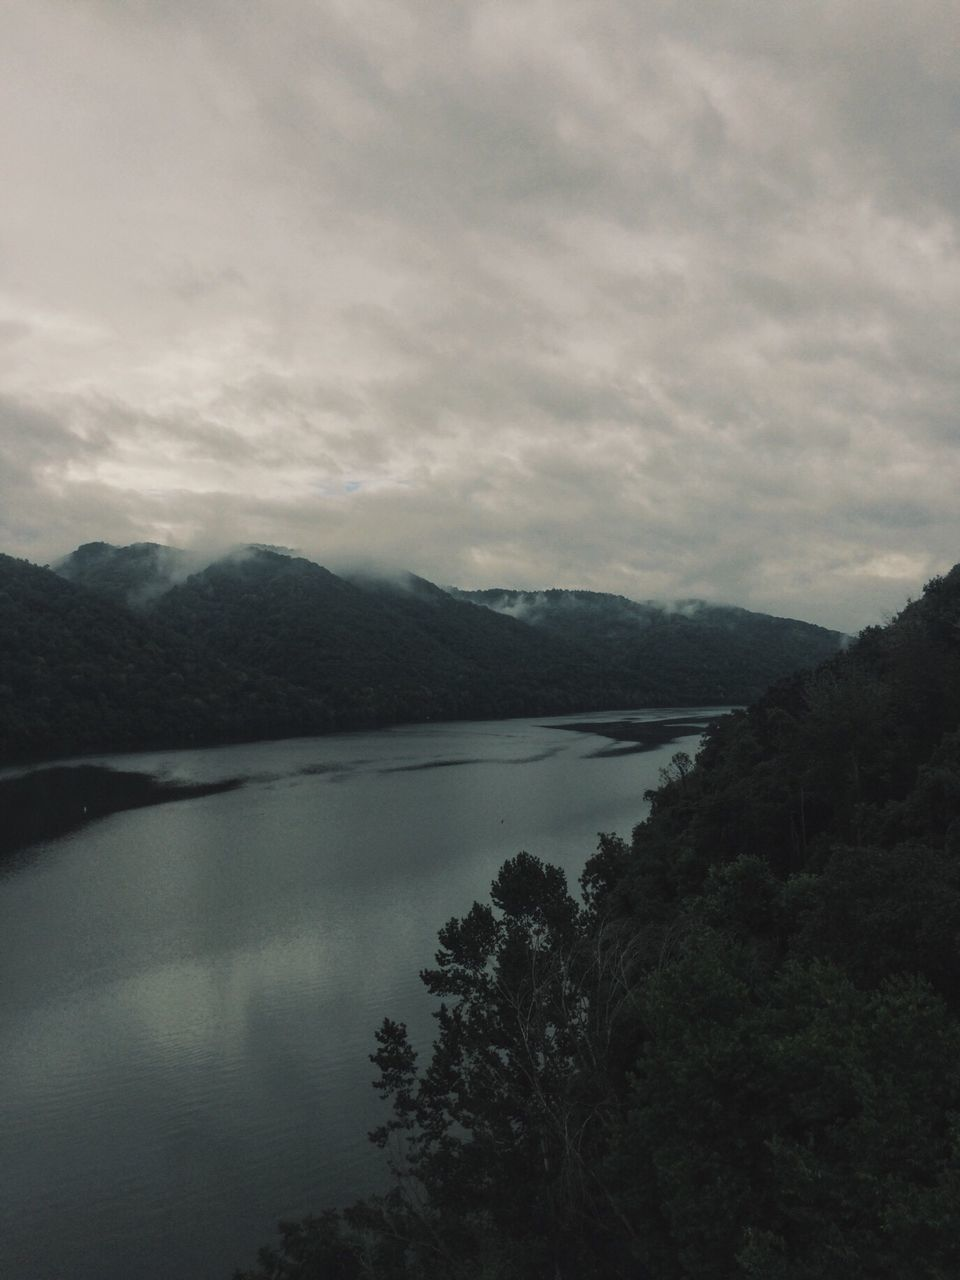 mountain, nature, sky, water, landscape, lake, beauty in nature, no people, scenics, outdoors, scenery, day